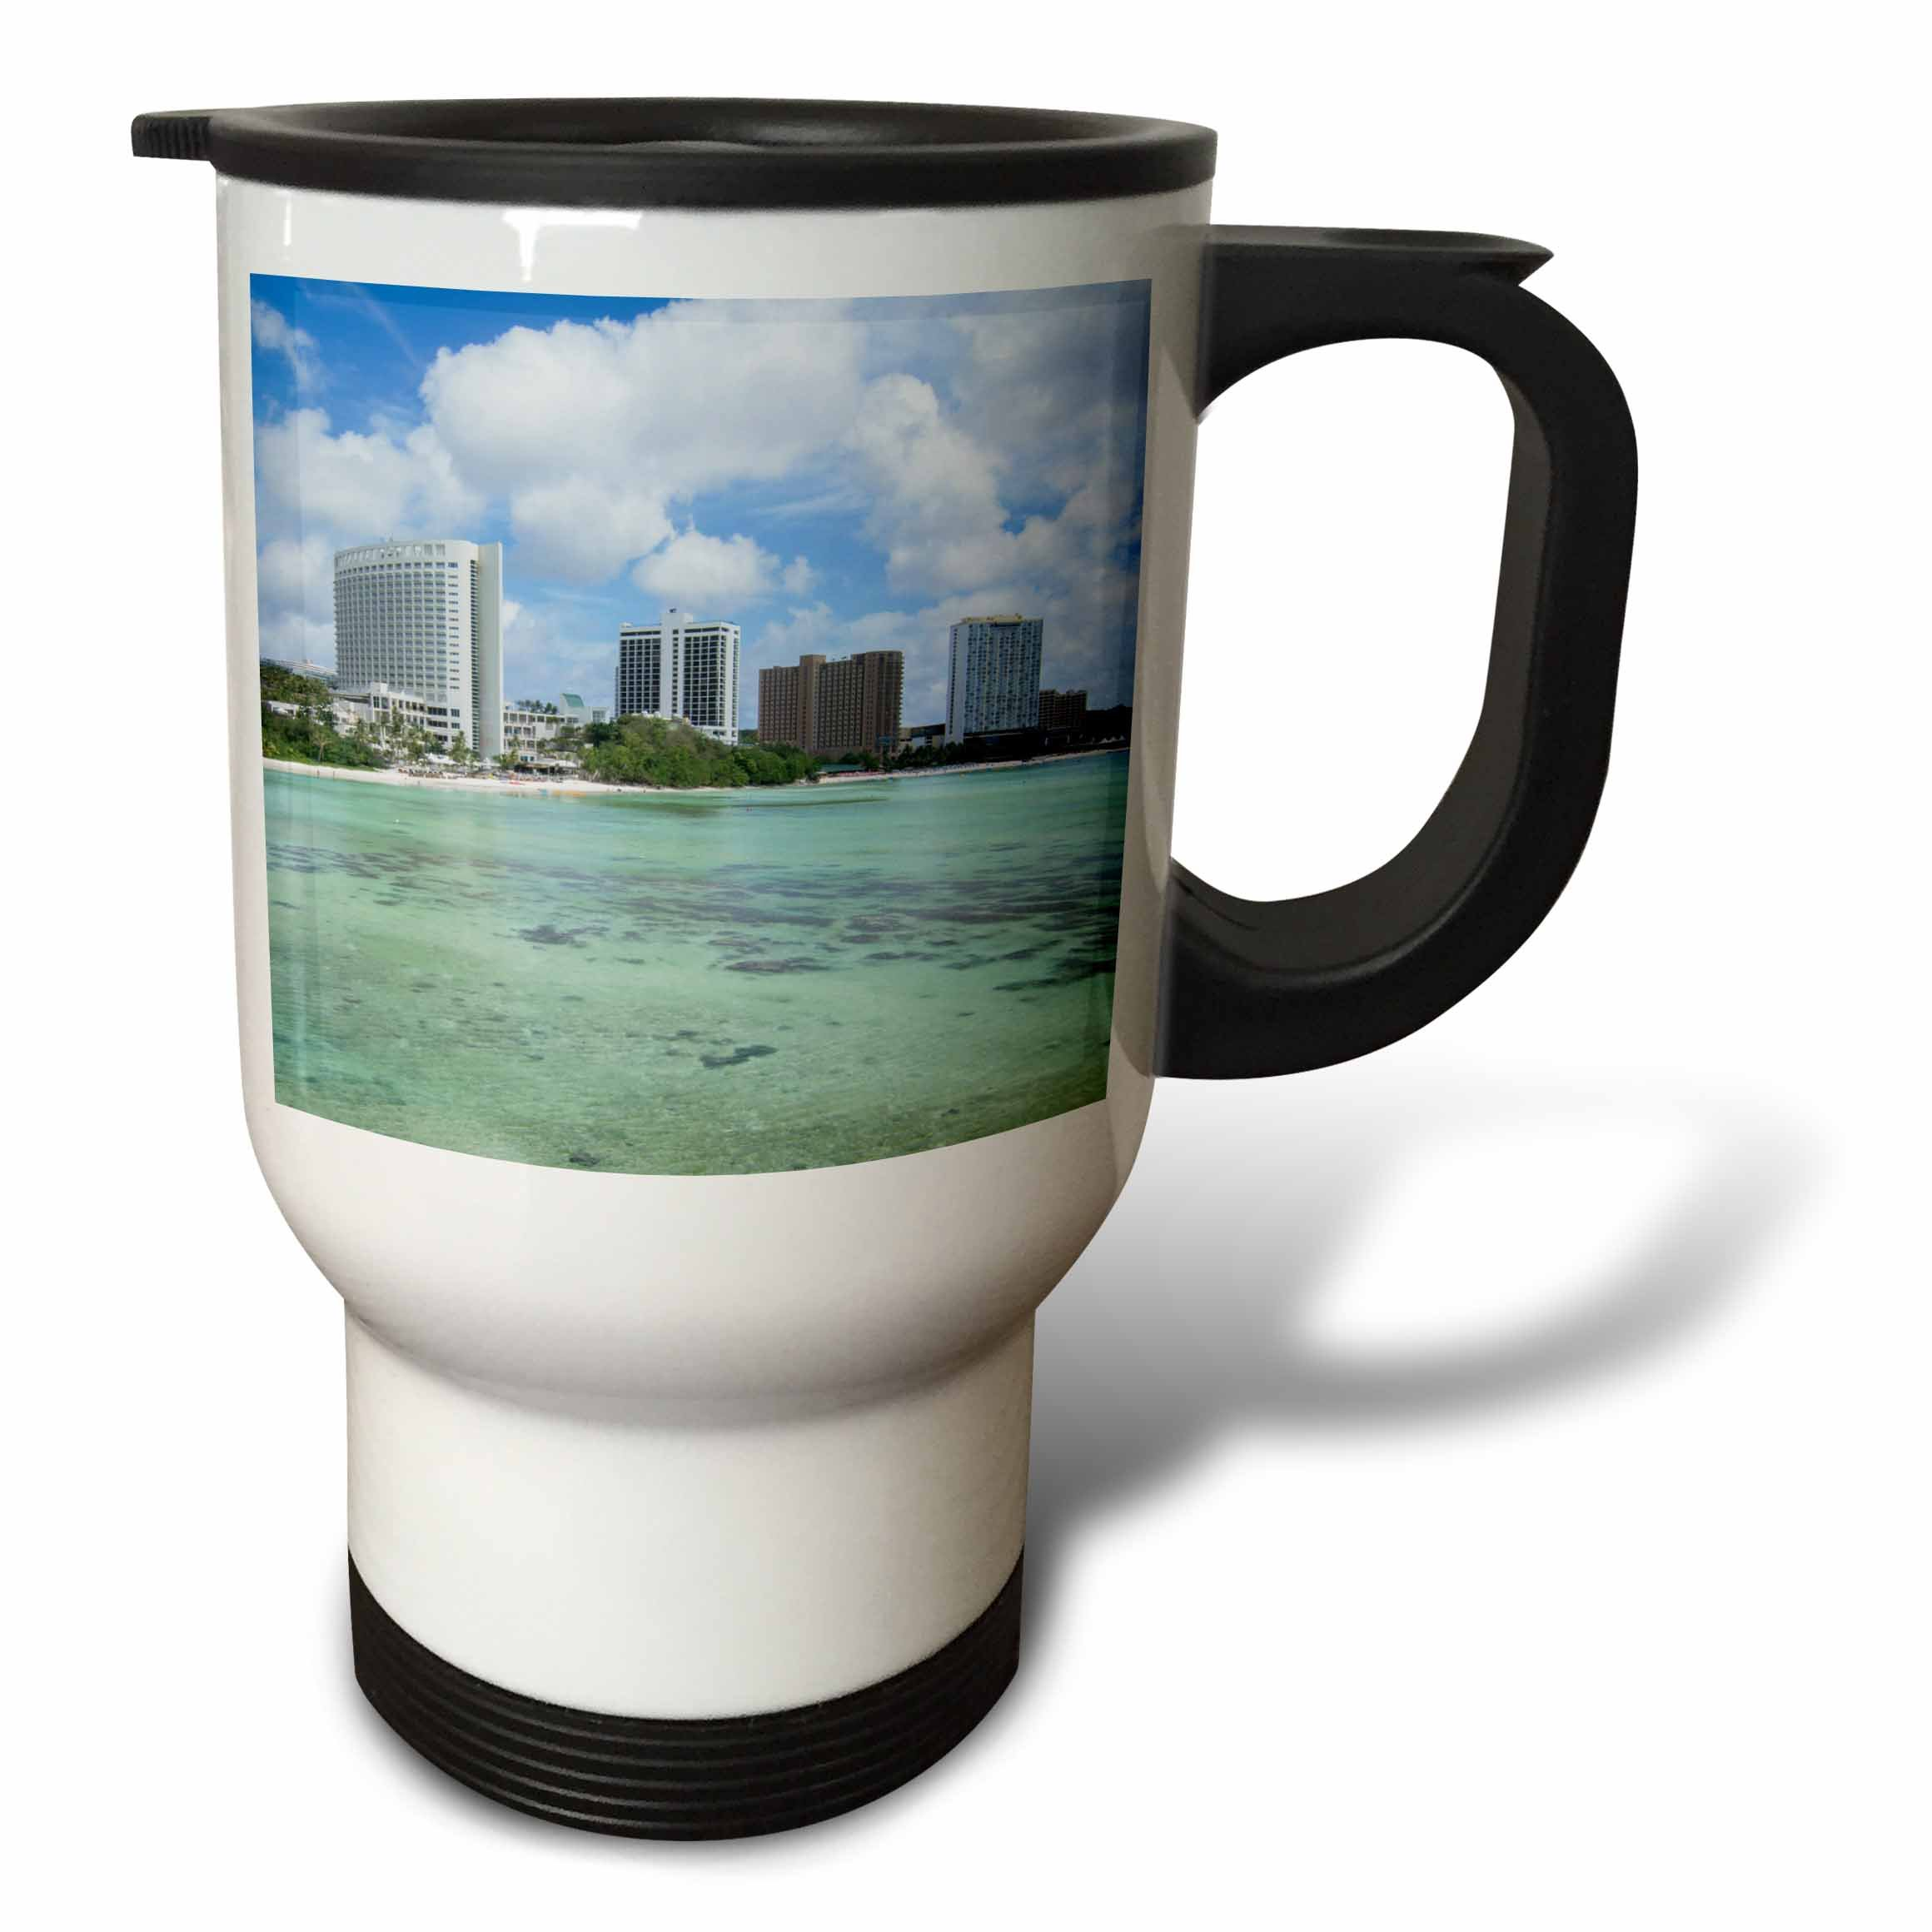 3dRose Danita Delimont - Cities - Guam Territory. Hotels line beach with clear tropical waters. - 14oz Stainless Steel Travel Mug (tm_278126_1)